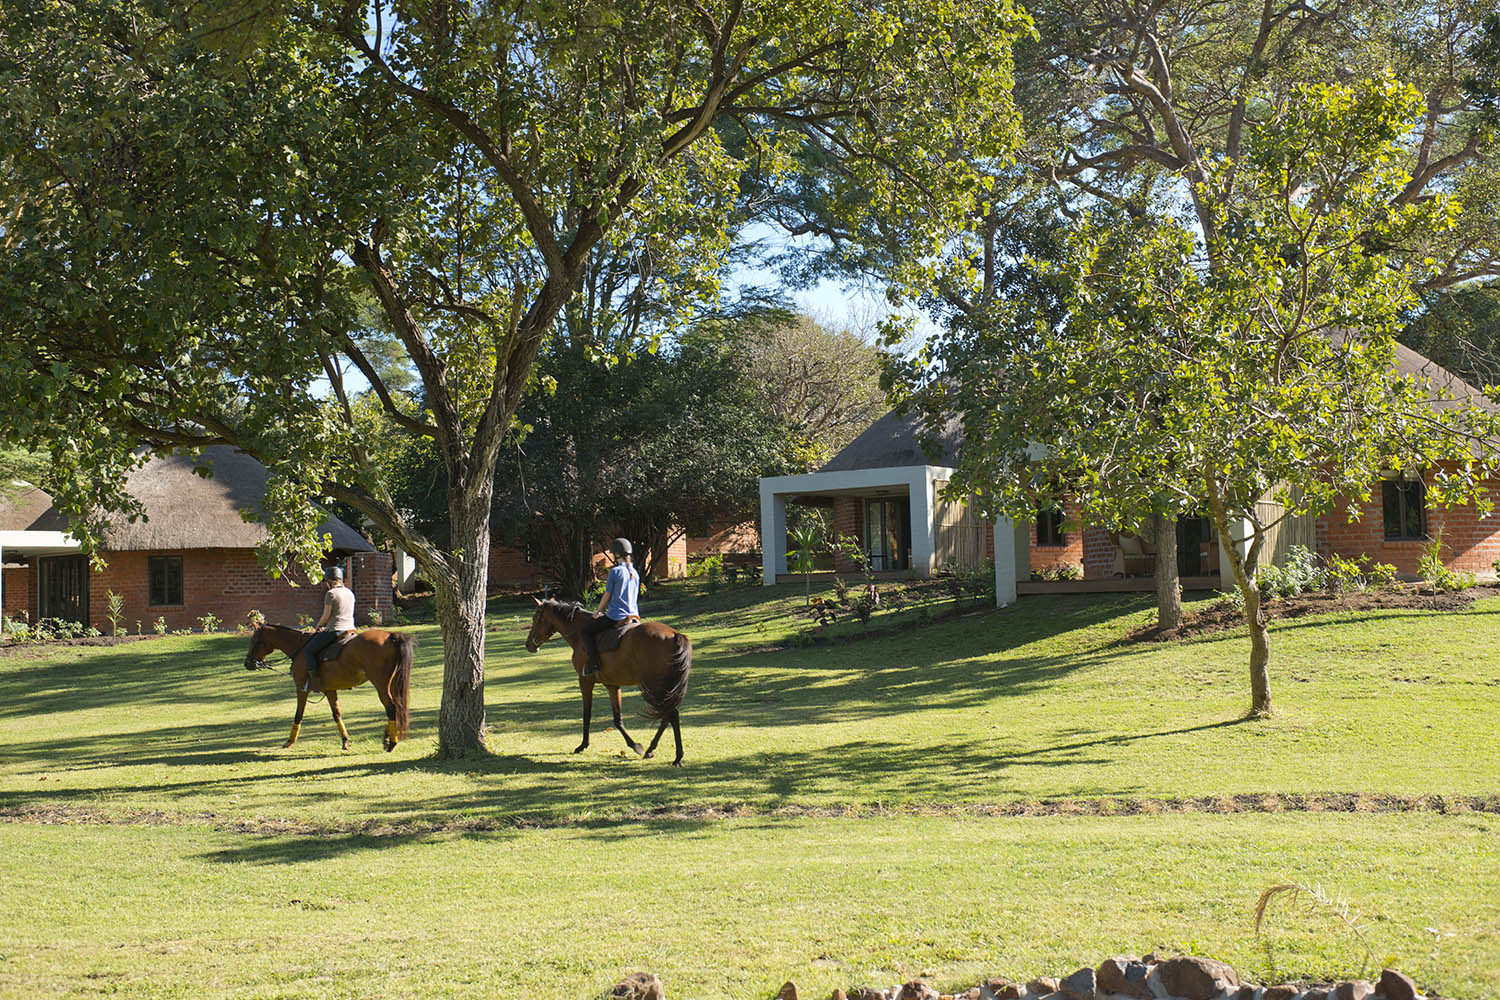 lilayi lodge zambia-in-style-tours-safari-packages-lodges-lusaka-accommodation-activities-horse-riding